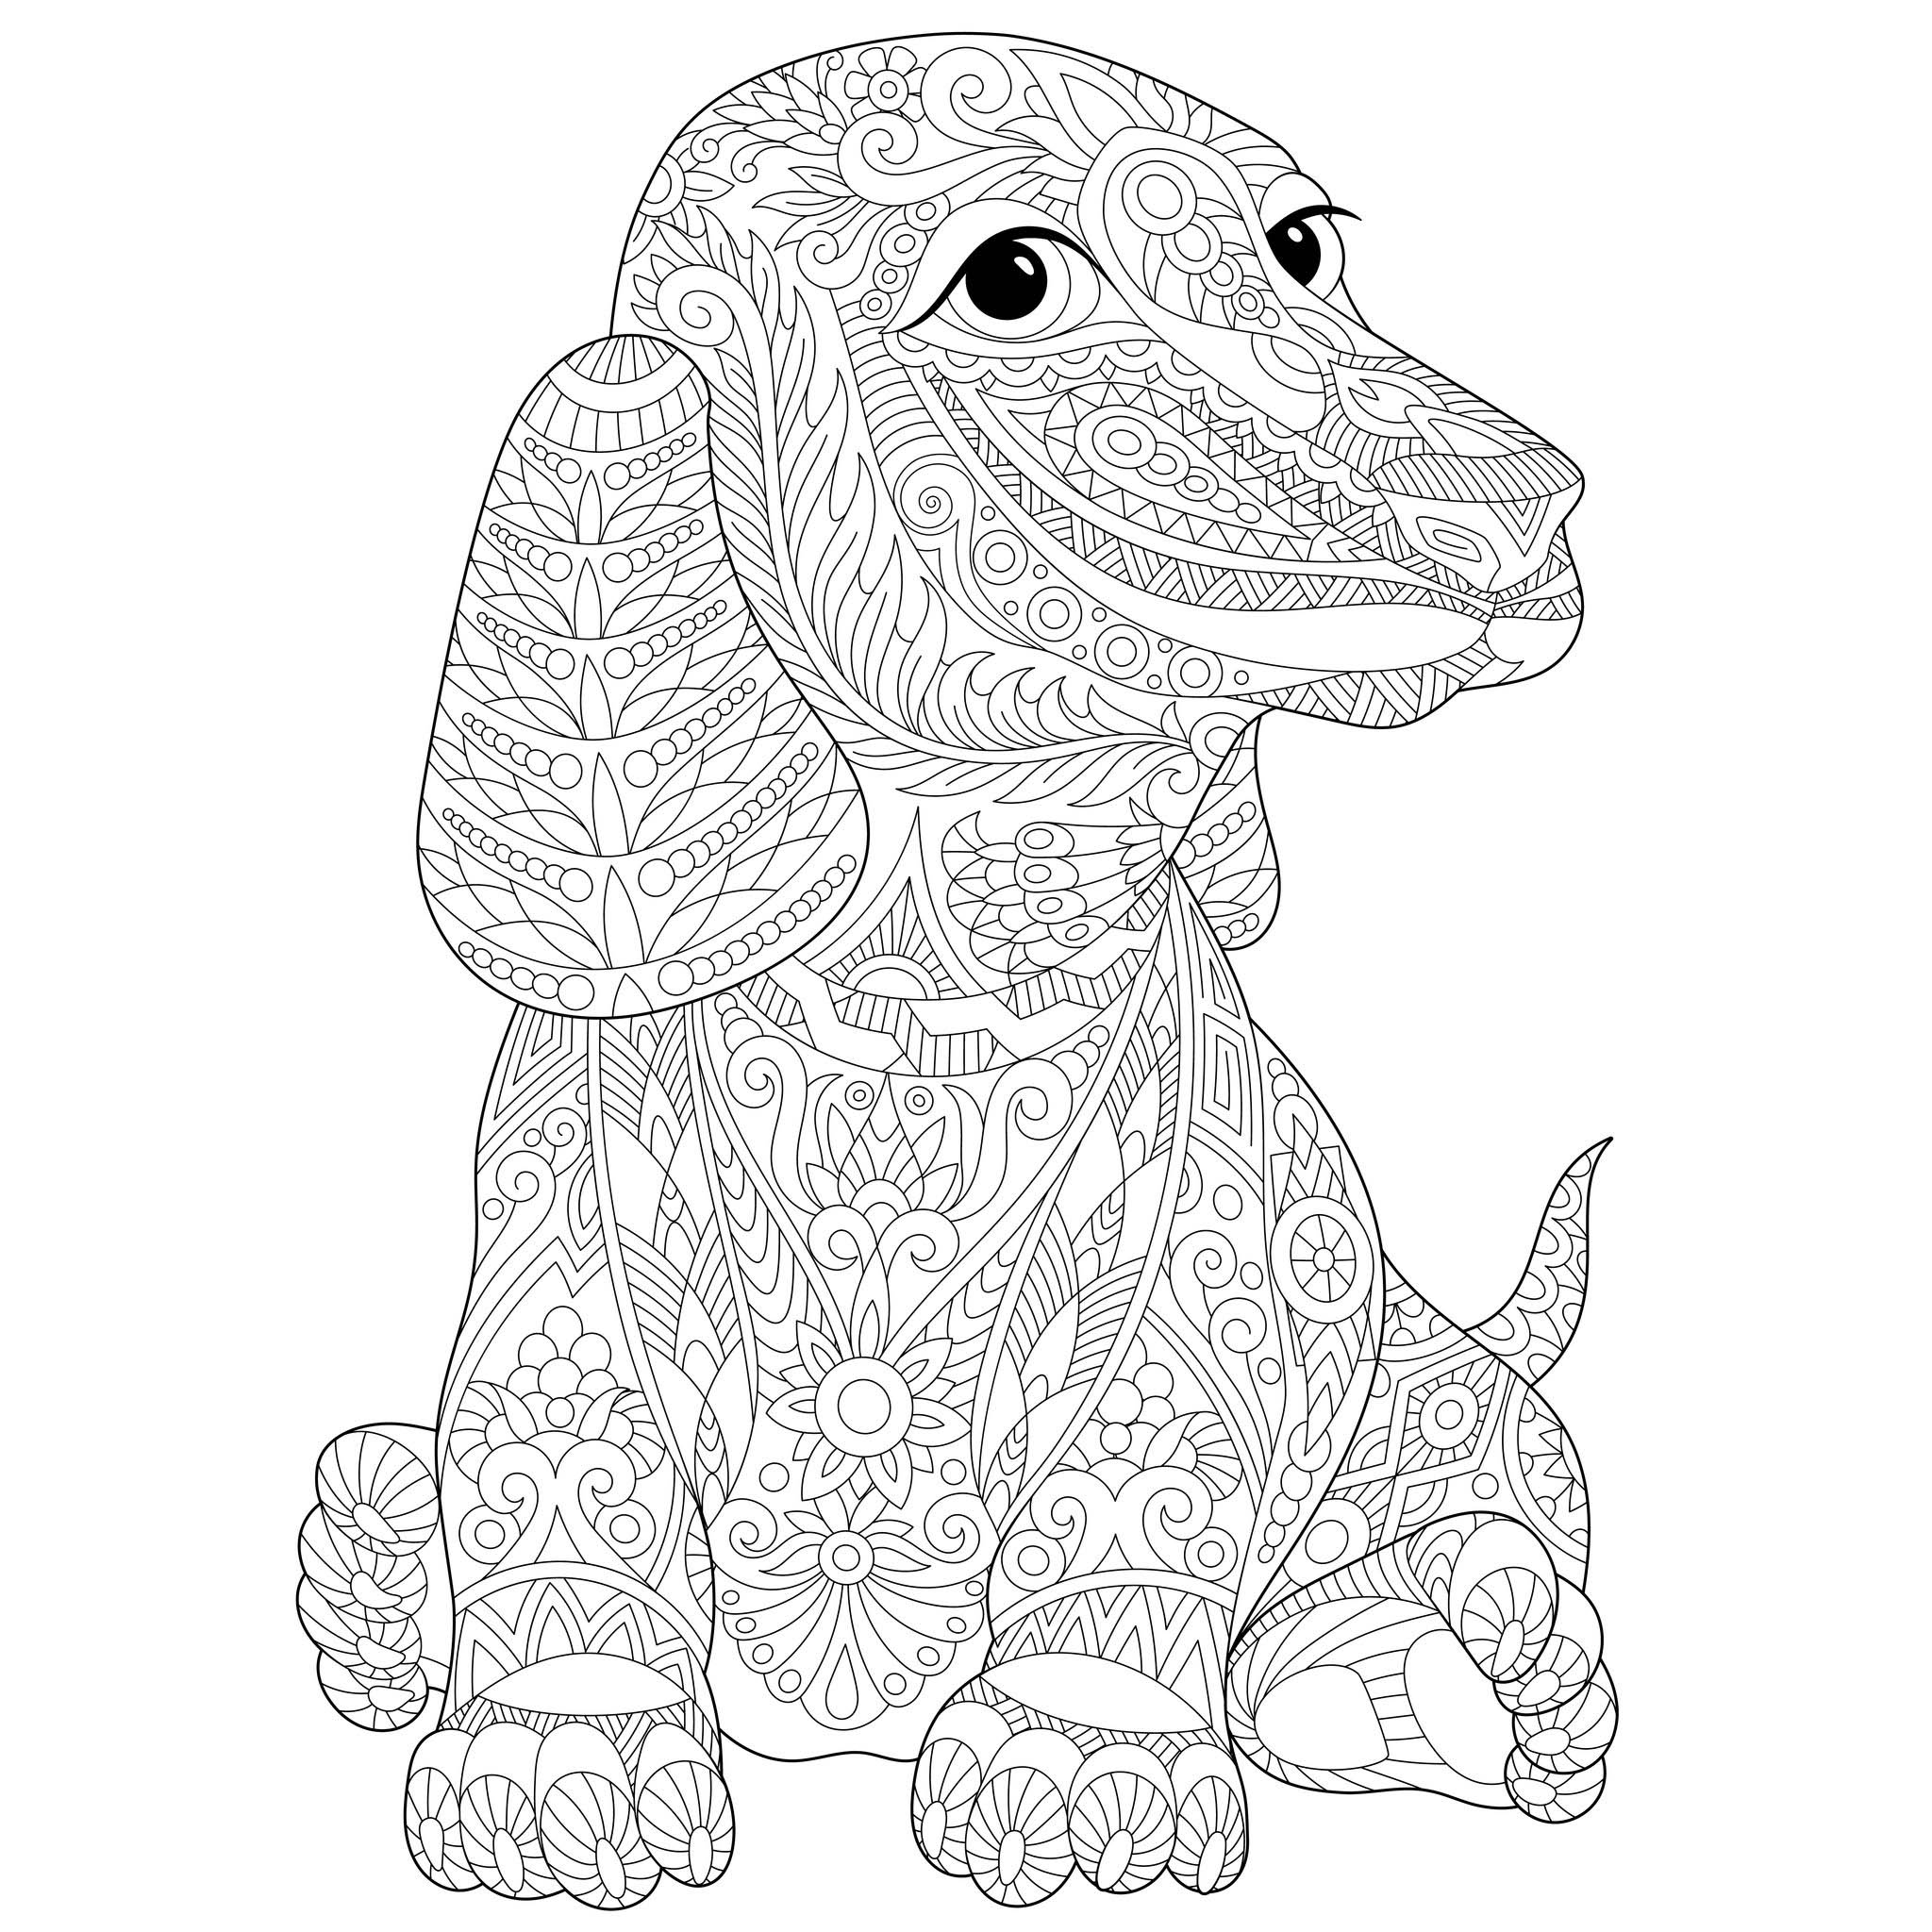 dog coloring pictures to print free printable dog coloring pages for kids print dog pictures to coloring